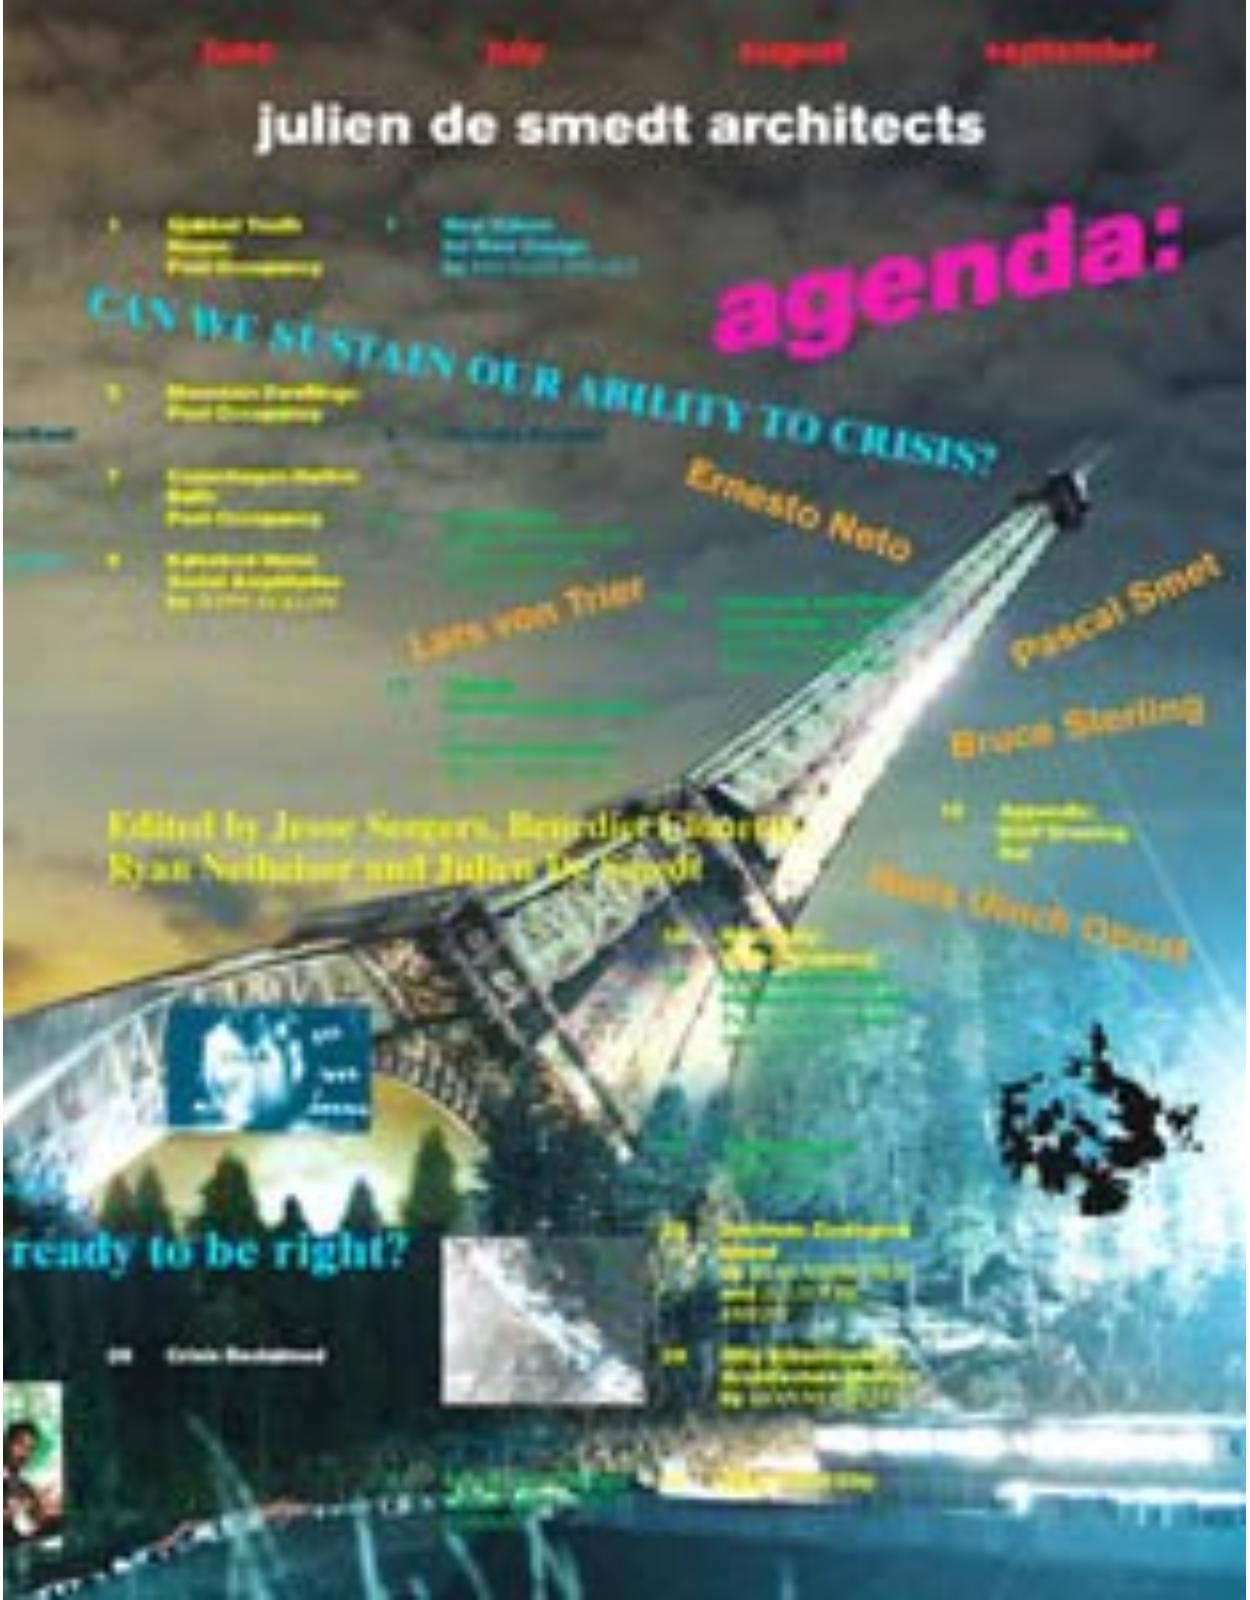 Agenda. JDS Architects. Can We Sustain Our Ability to Crisis?